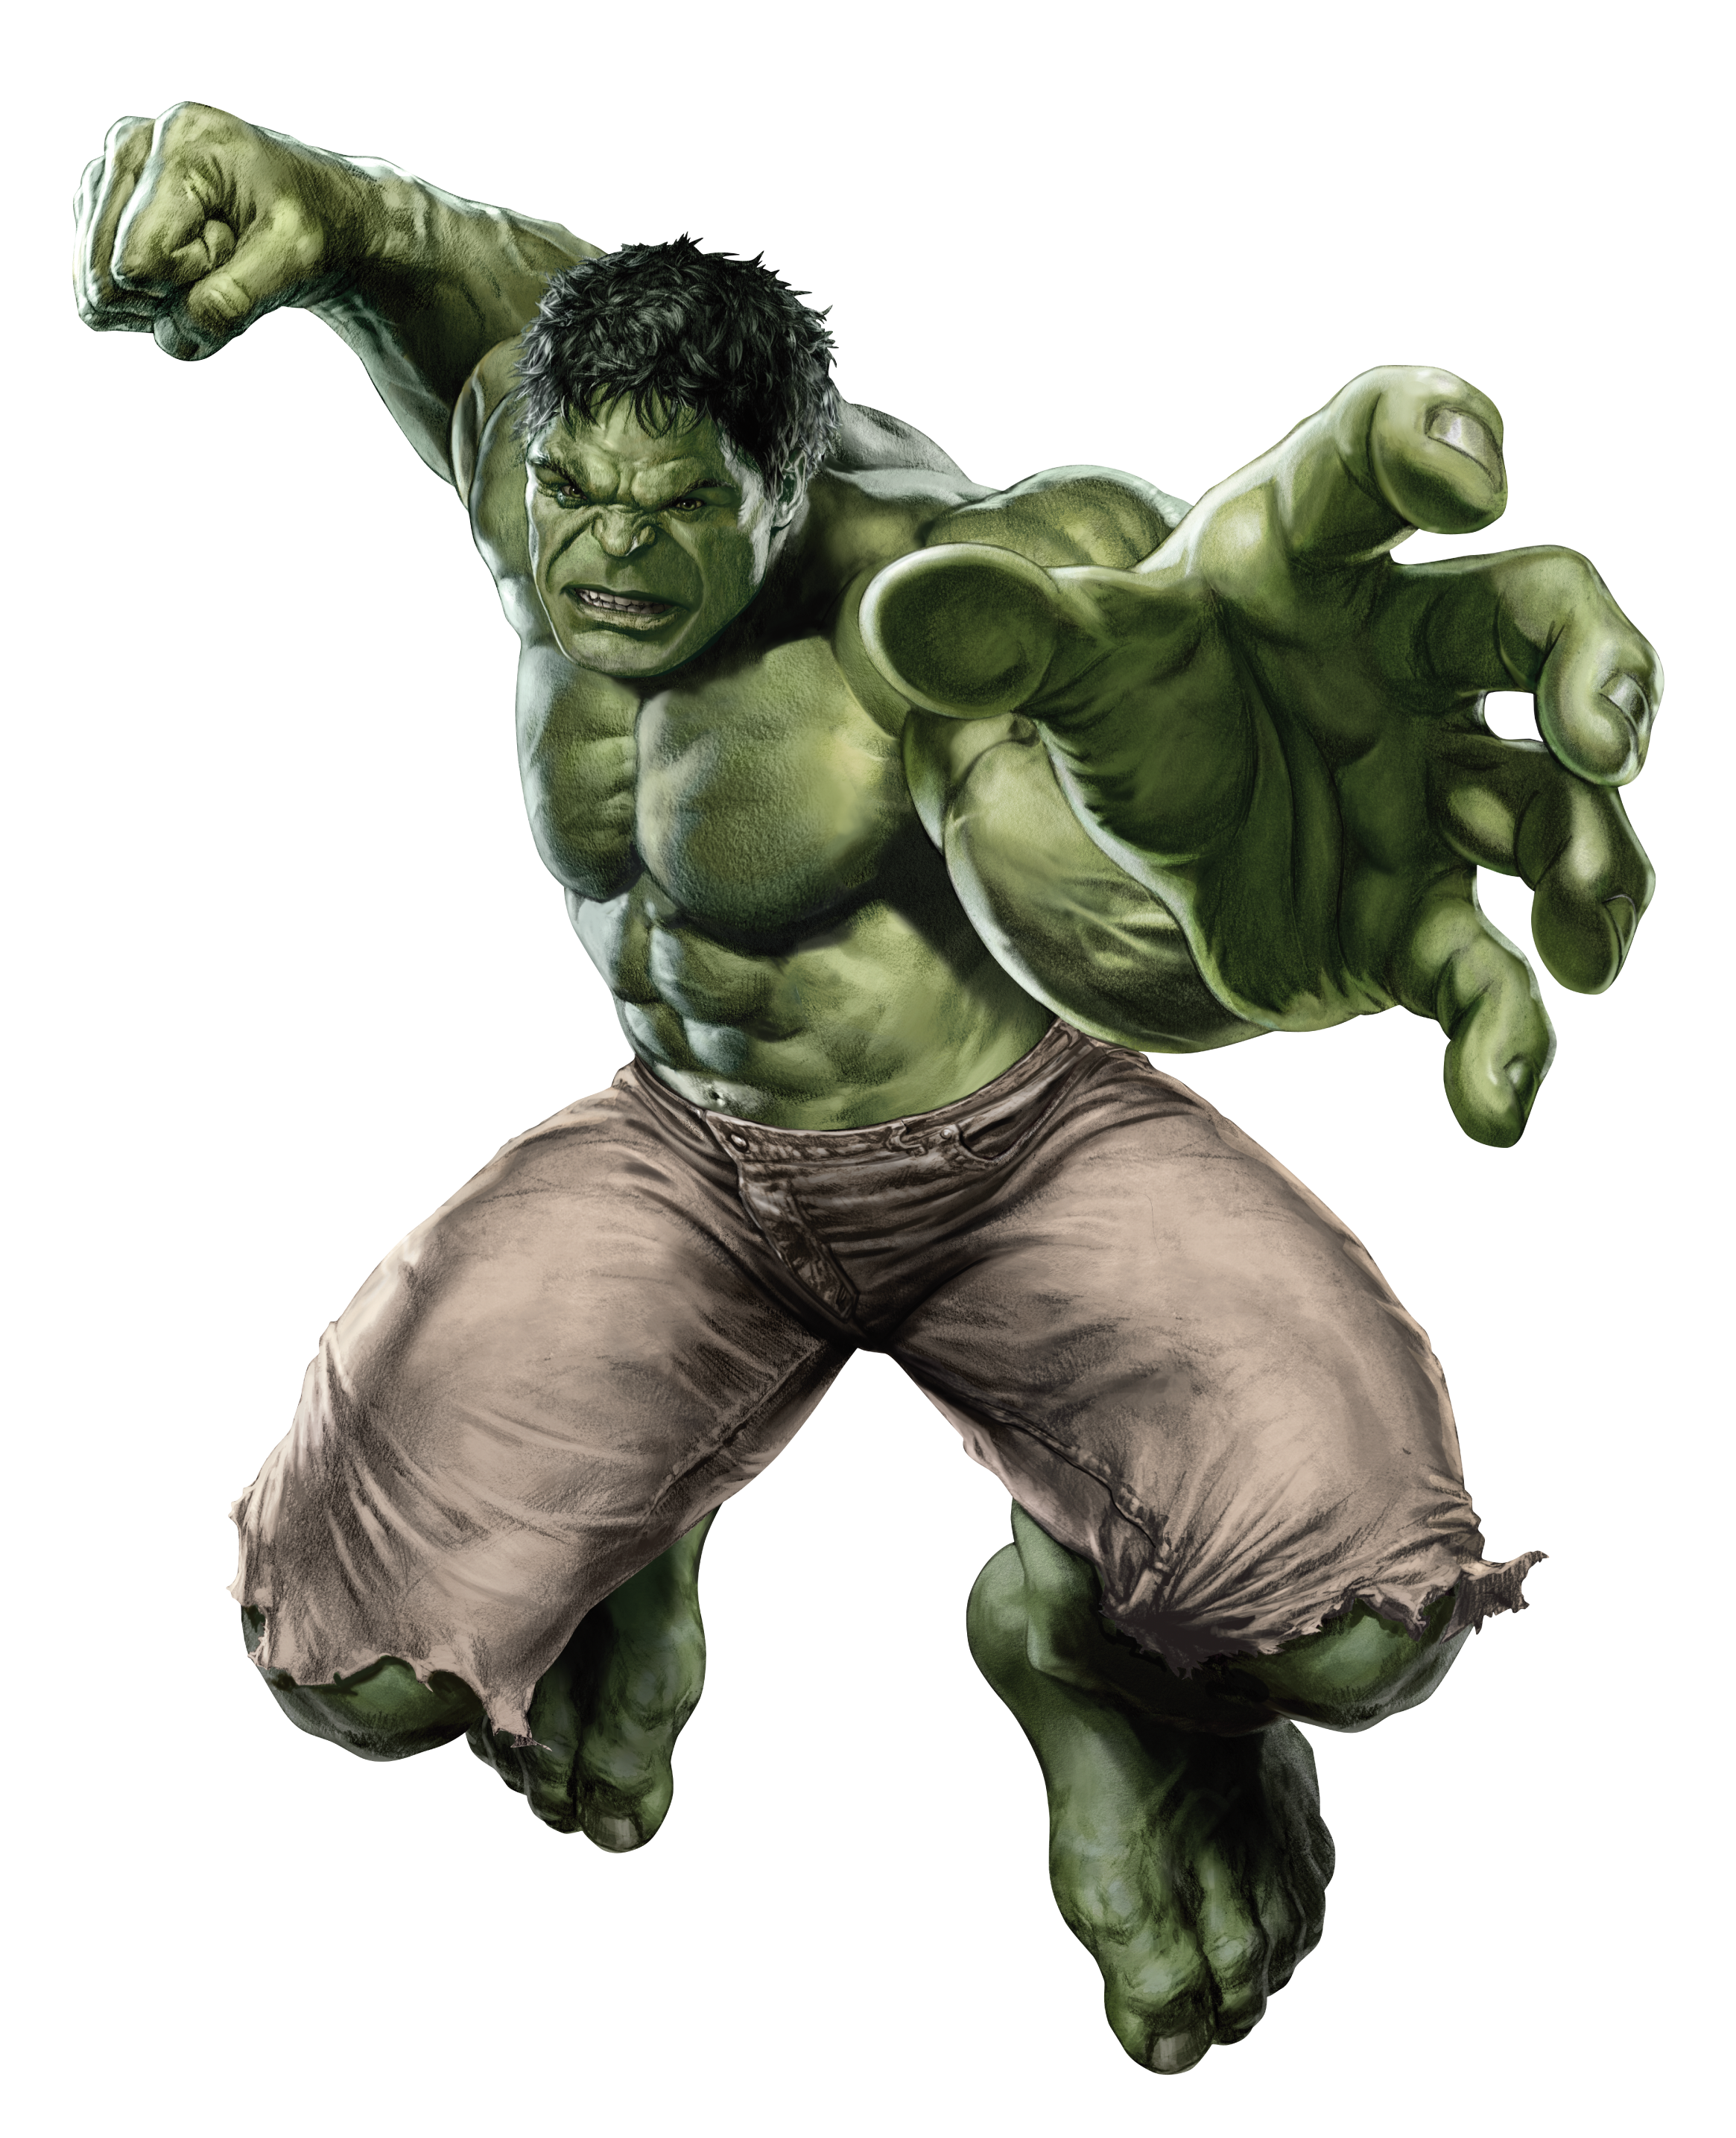 Transparent muscles clear background. Image sjpa hulk png